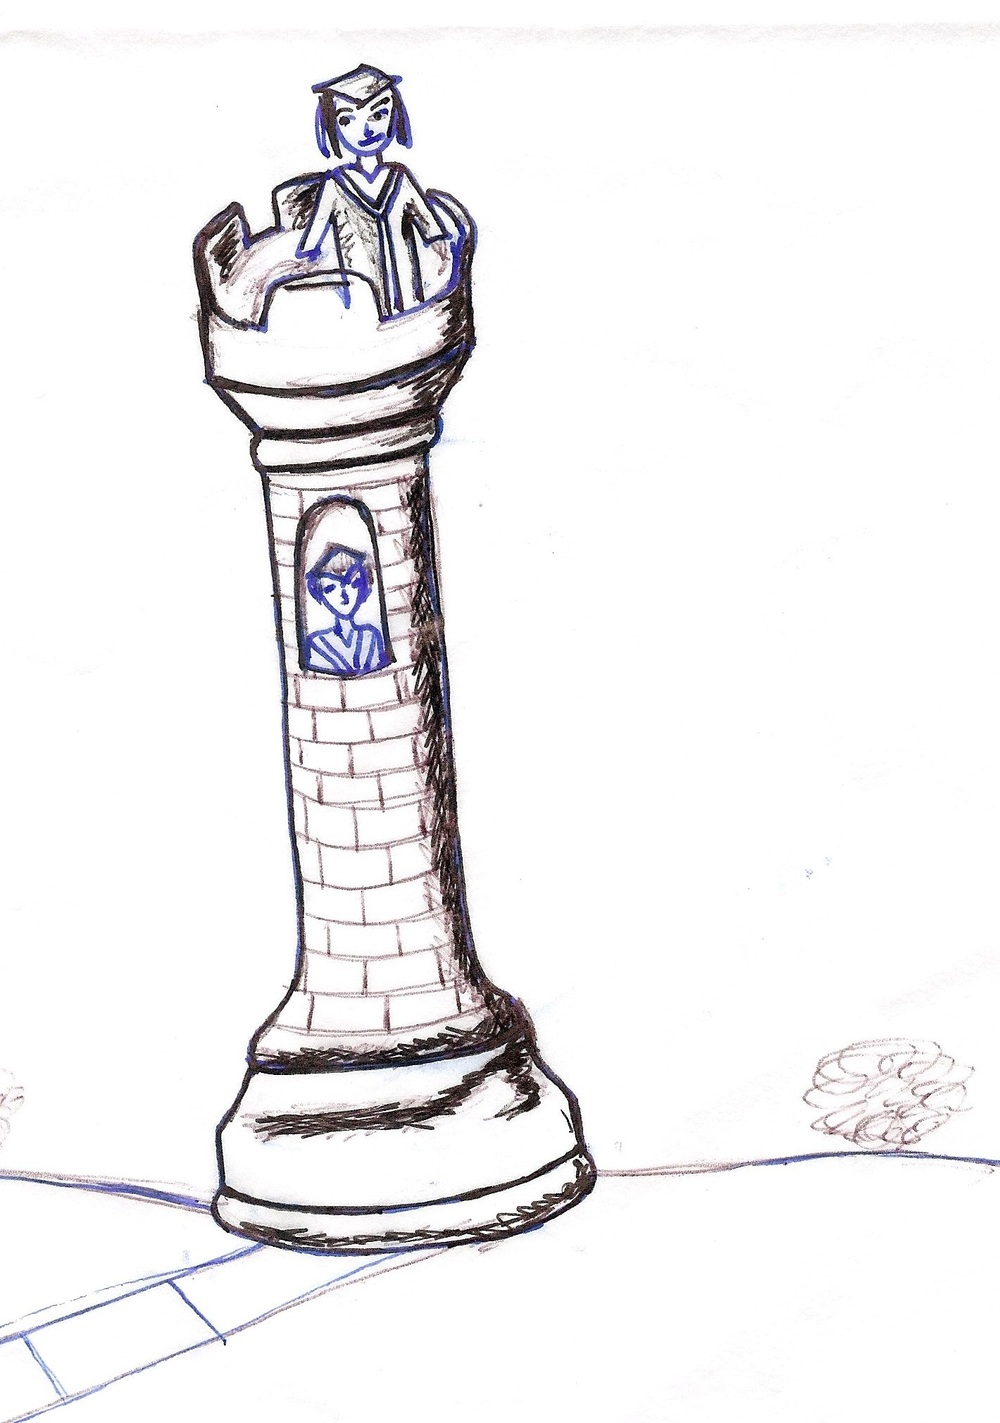 Image description: A drawing of a rook from a chess set as a tower, with a woman standing at the top, and another person visible through a window. Both are dressed in graduation robes and hats.